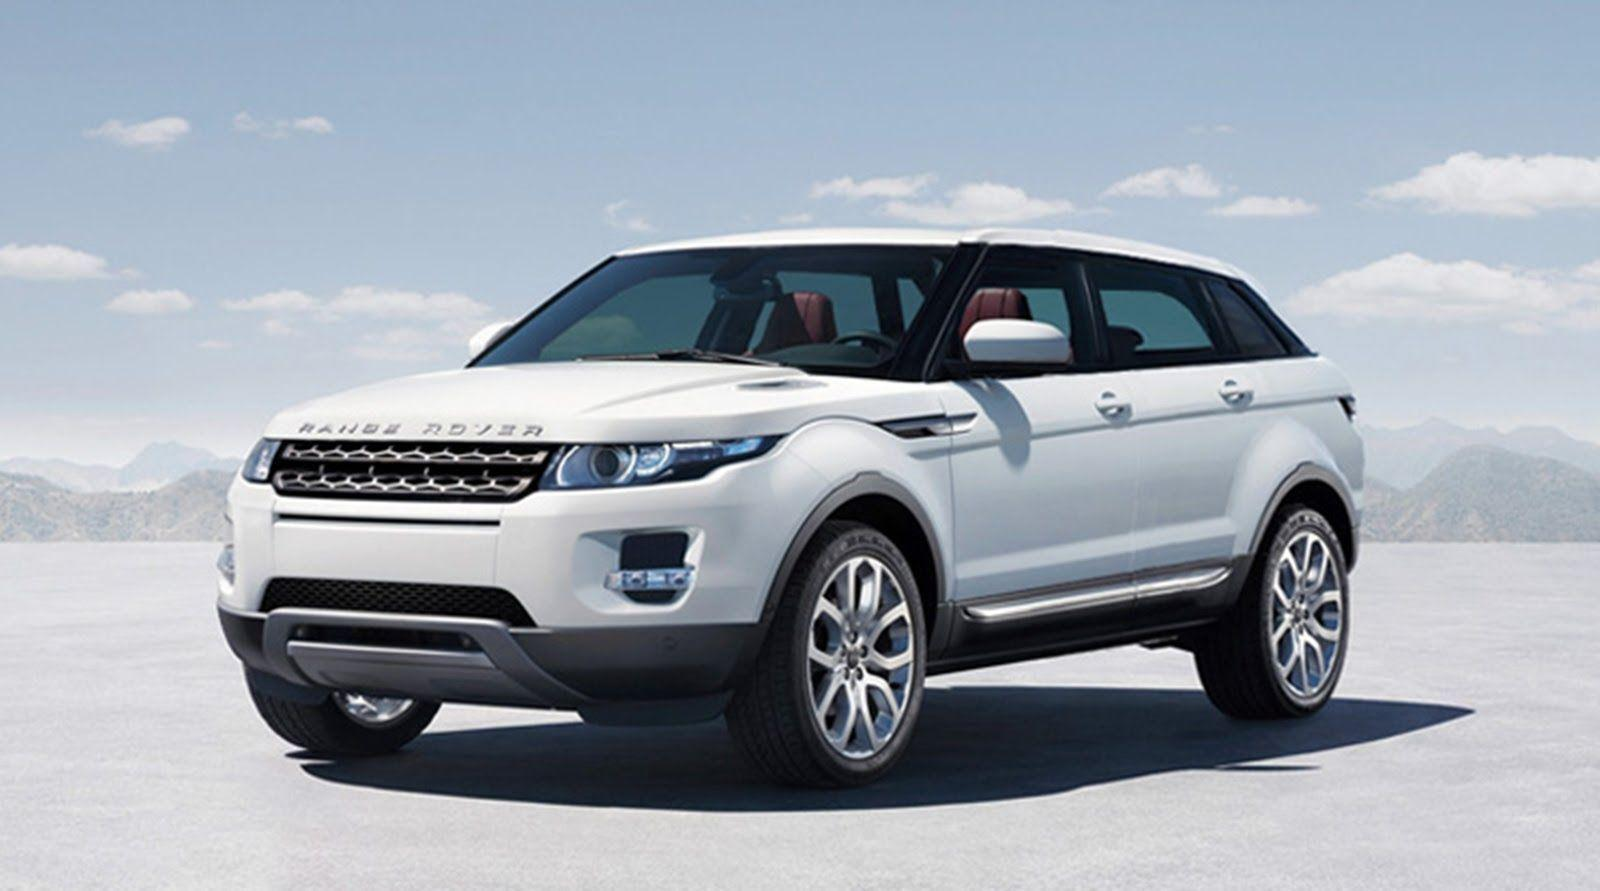 hight resolution of 2016 range rover sport free wallpapers 12644 nuevofence com